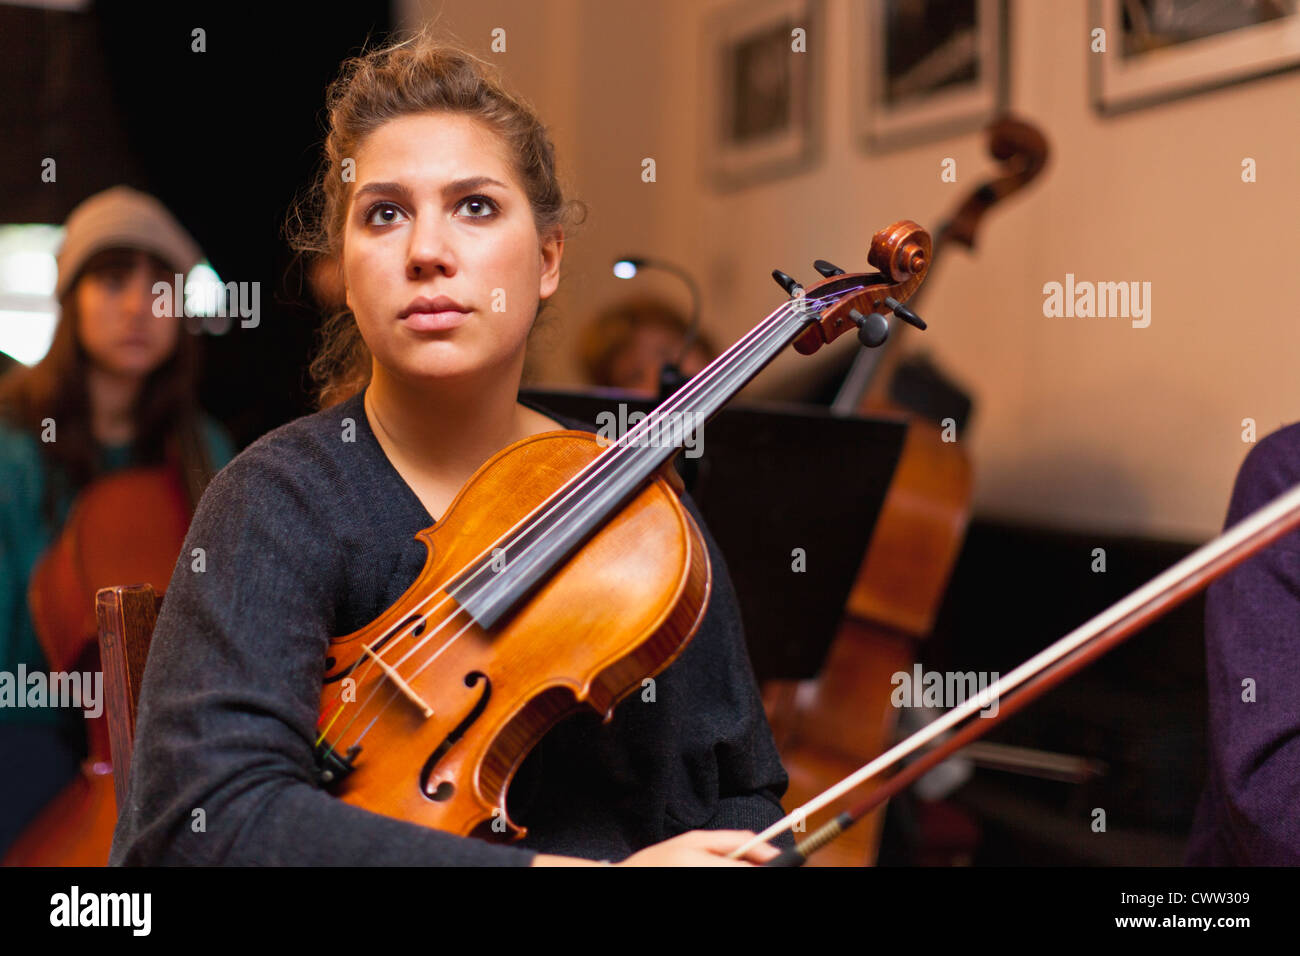 Violin player sitting in practice - Stock Image